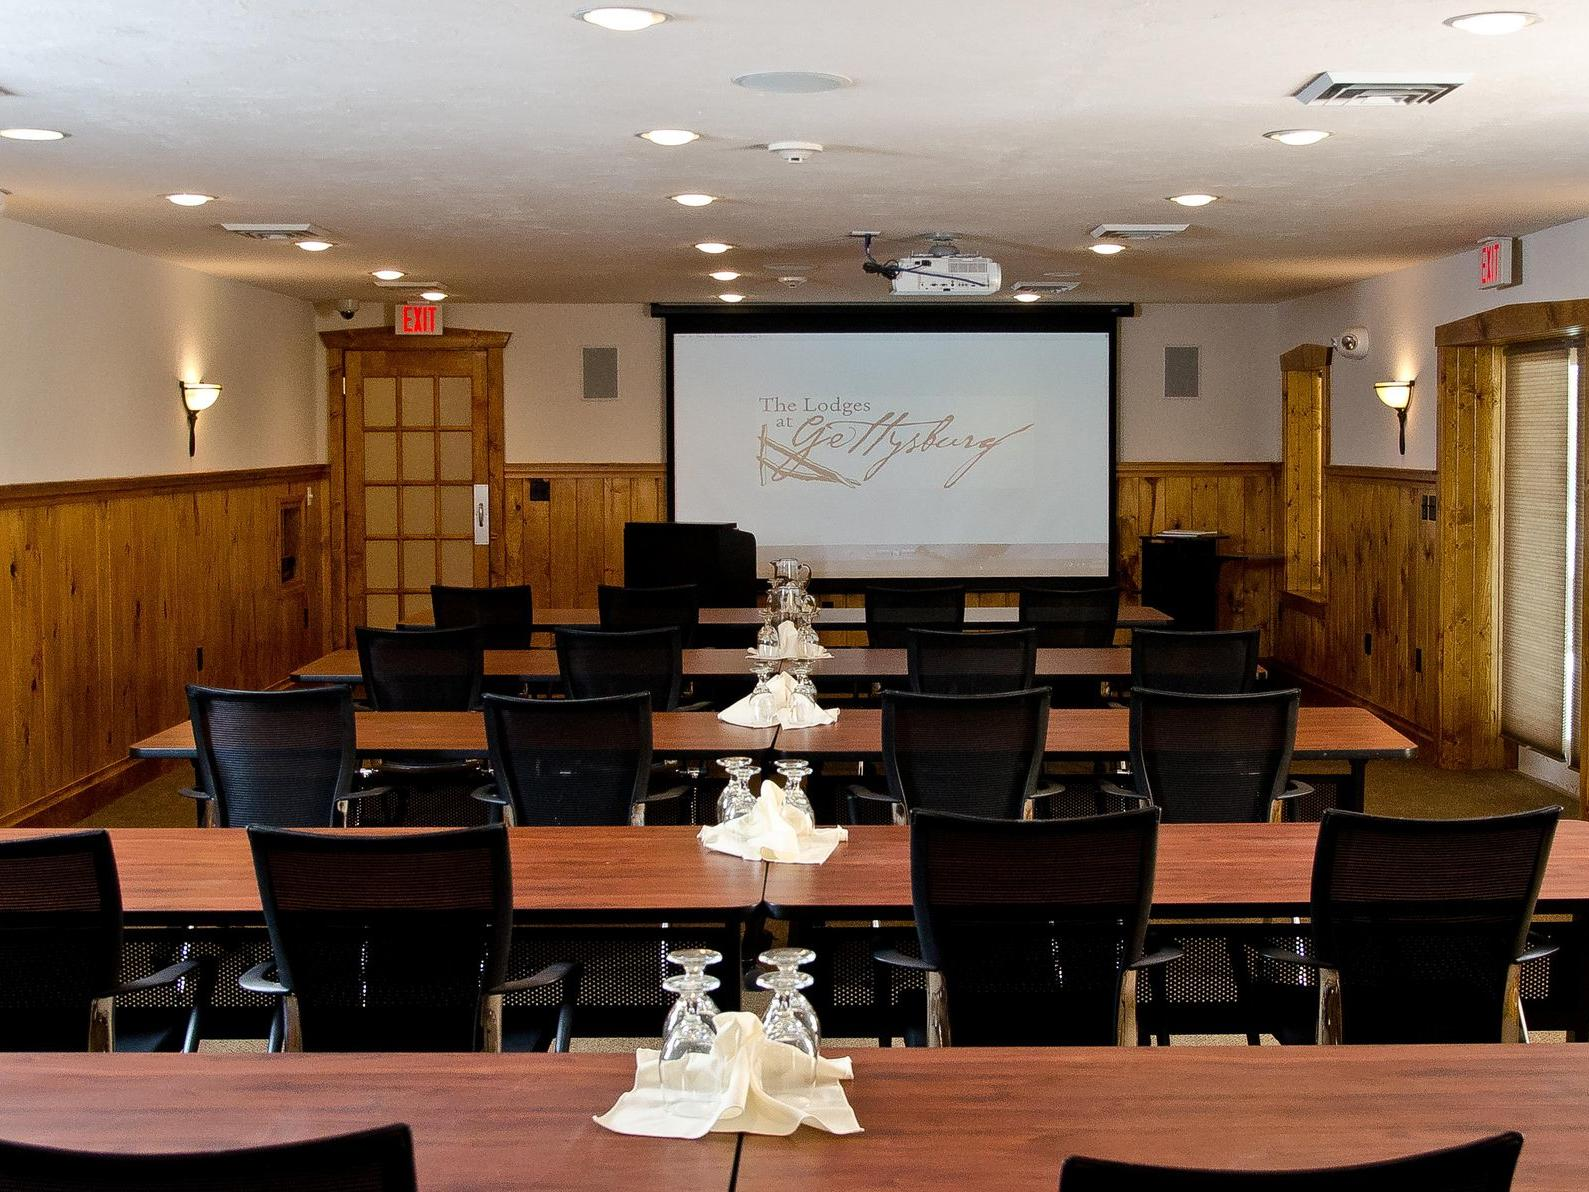 conference room with chairs and screen